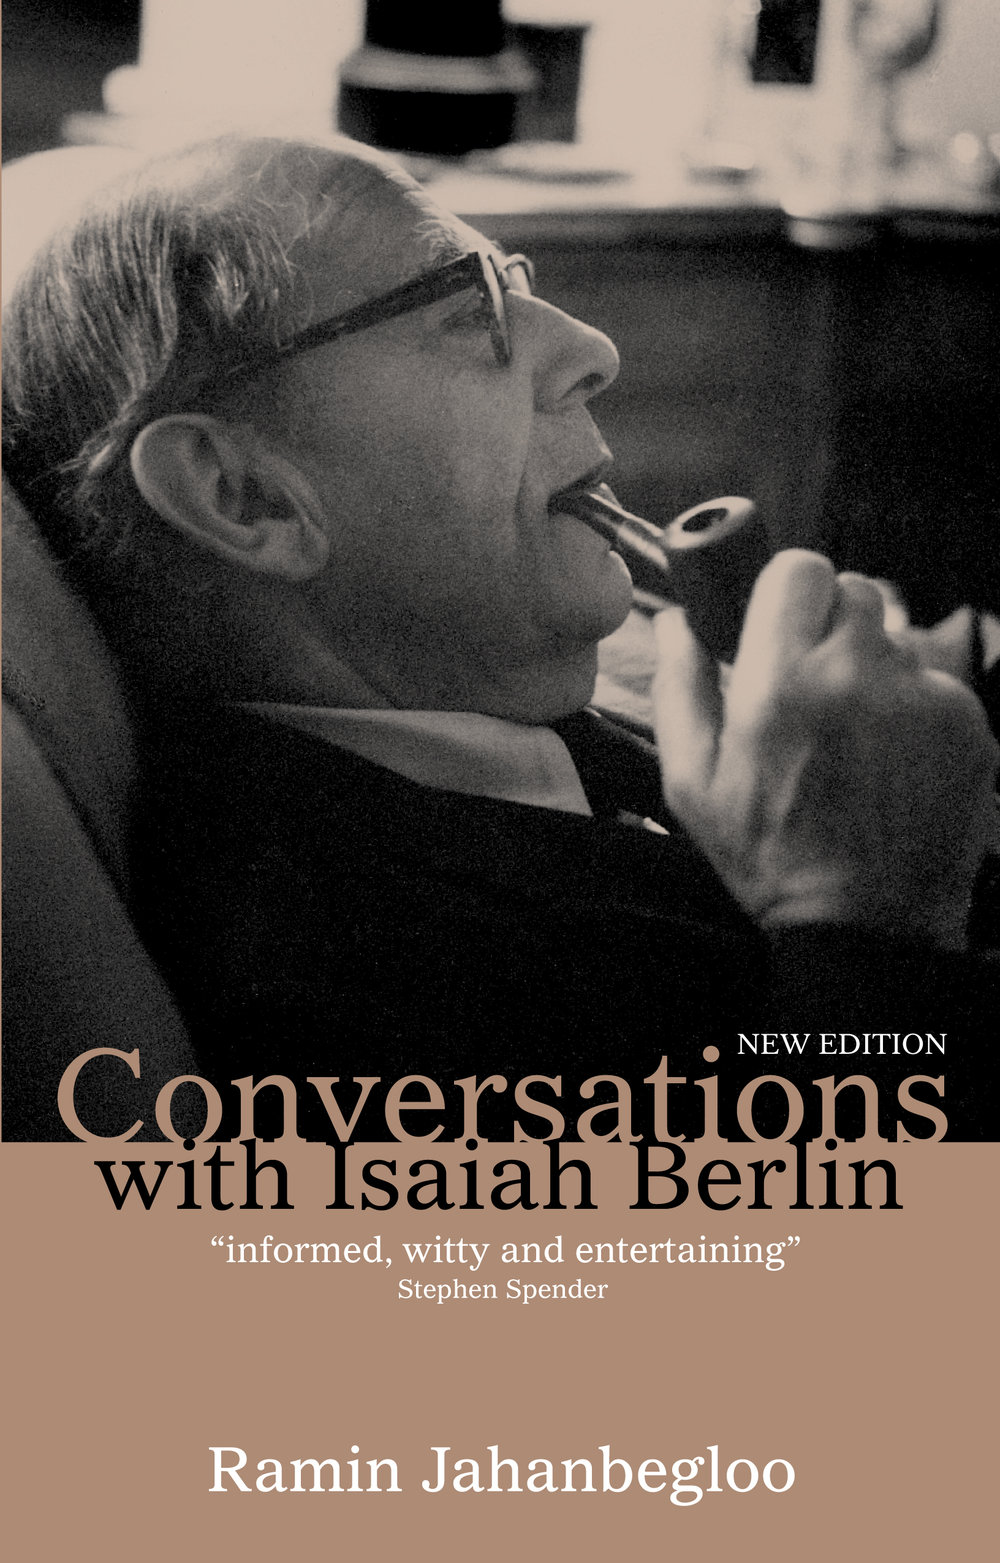 Conversations With Isaiah Berlin 9781905559329.jpg